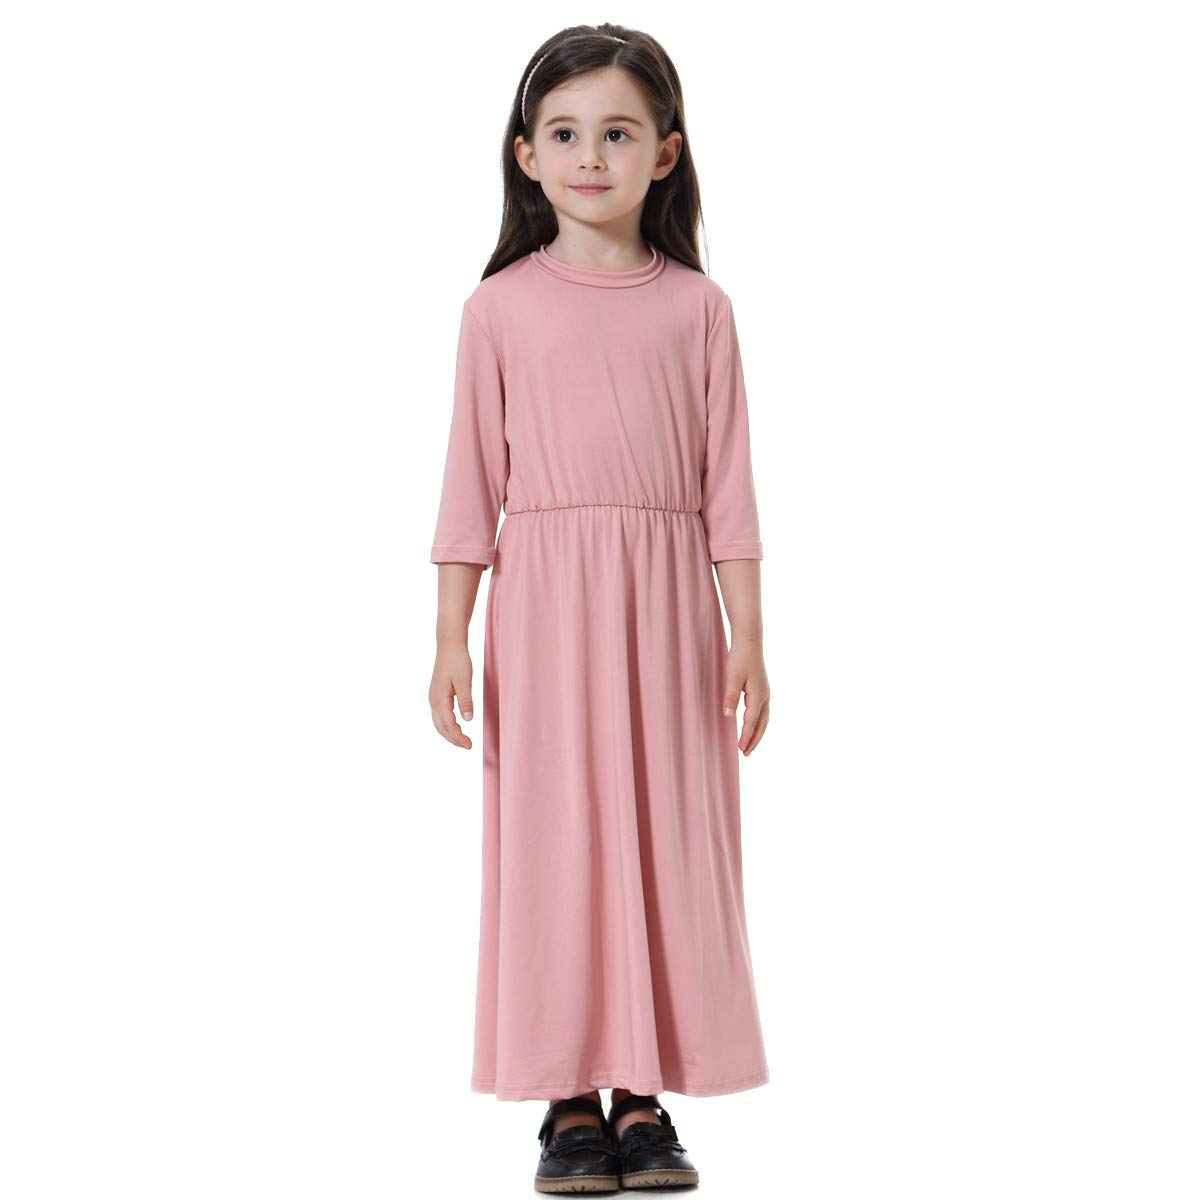 AMSKY Baby Clothes Dividers Floral,Toddler Kids Children Muslim Girls Solid Long Sleeve Dress Casual Long Dess,Pink,150